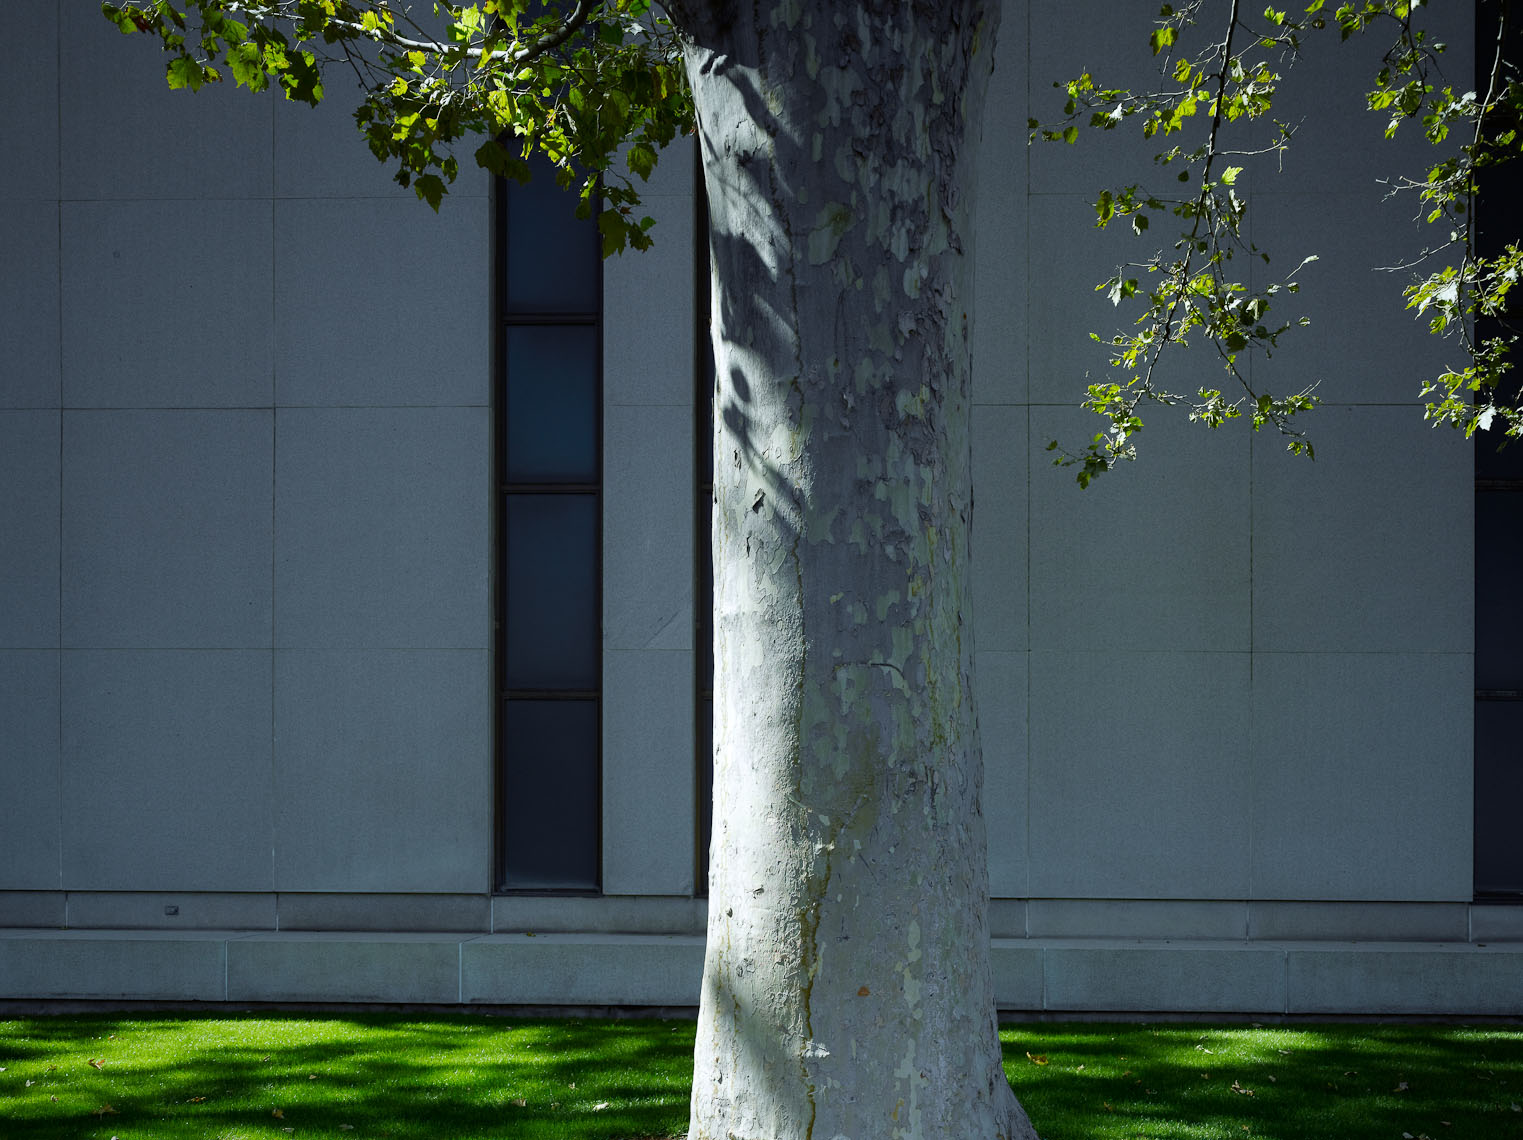 LDS_Temple_Square_048.jpg